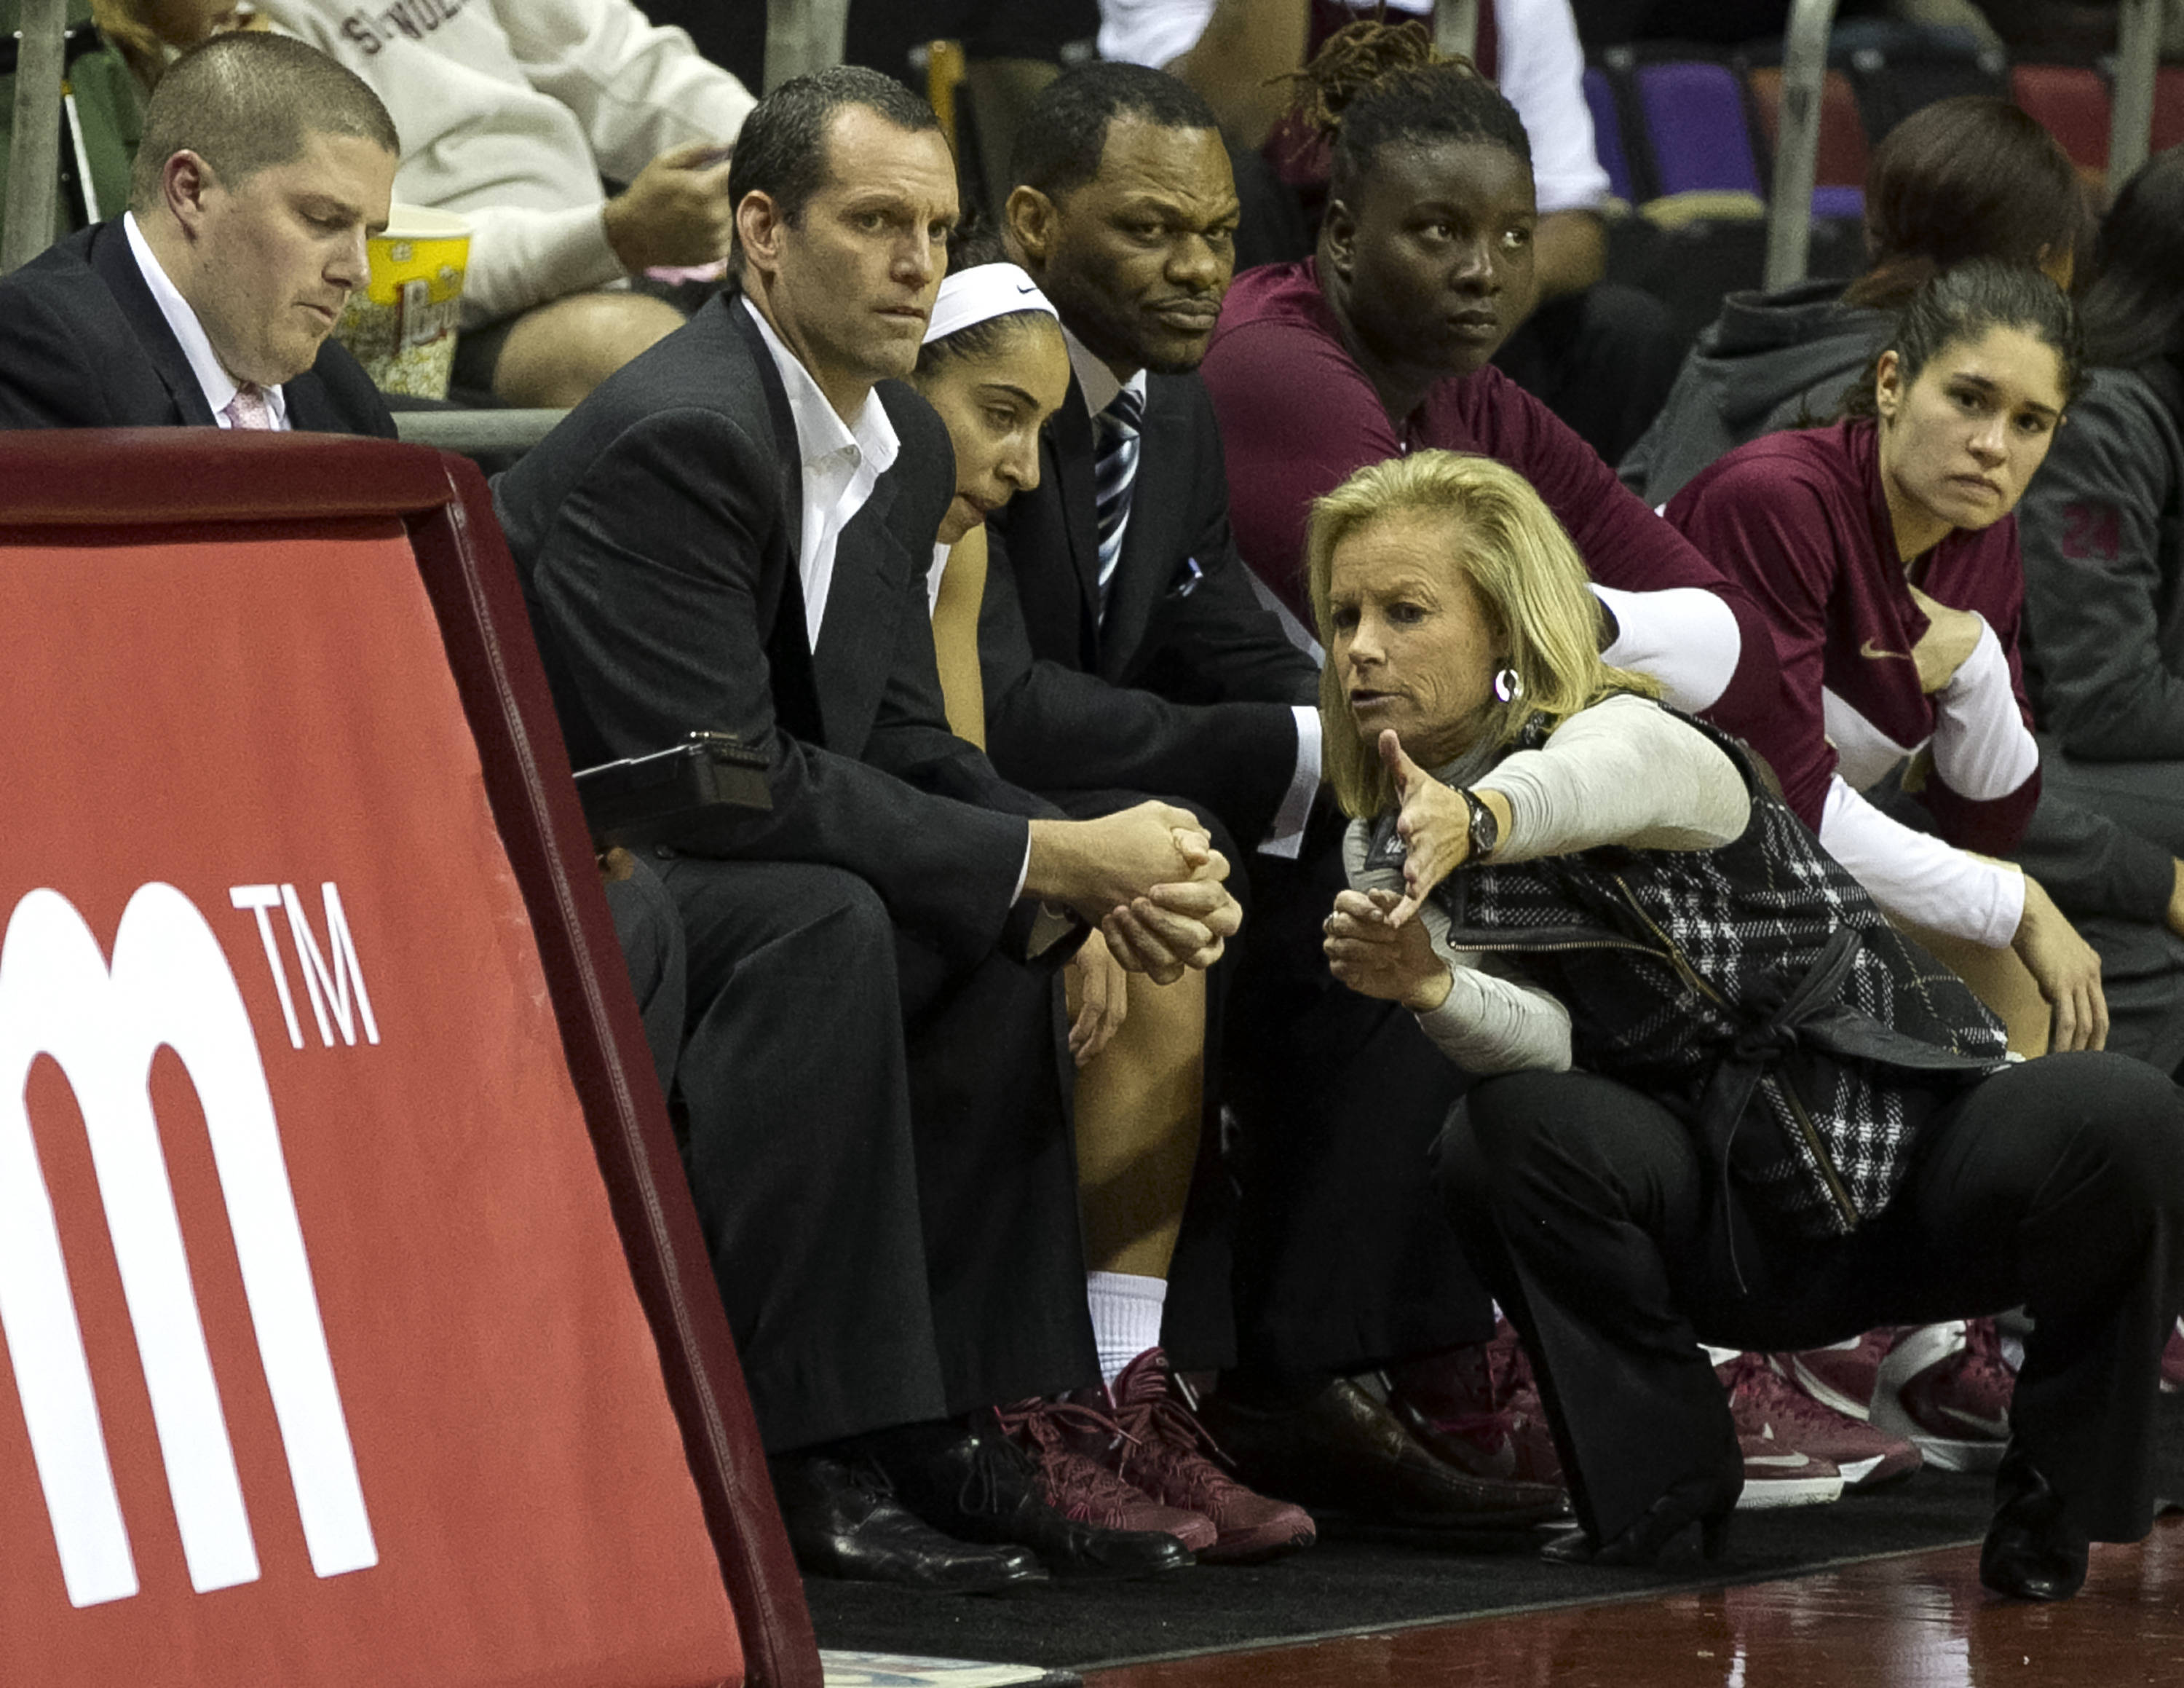 Head Coach Sue Semrau, Associate Head Coach Lance White, Assistant Coach Ronald Hughey, Cheetah Delgado (5), FSU vs Stetson, 11-29-13,  (Photo by Steve Musco)